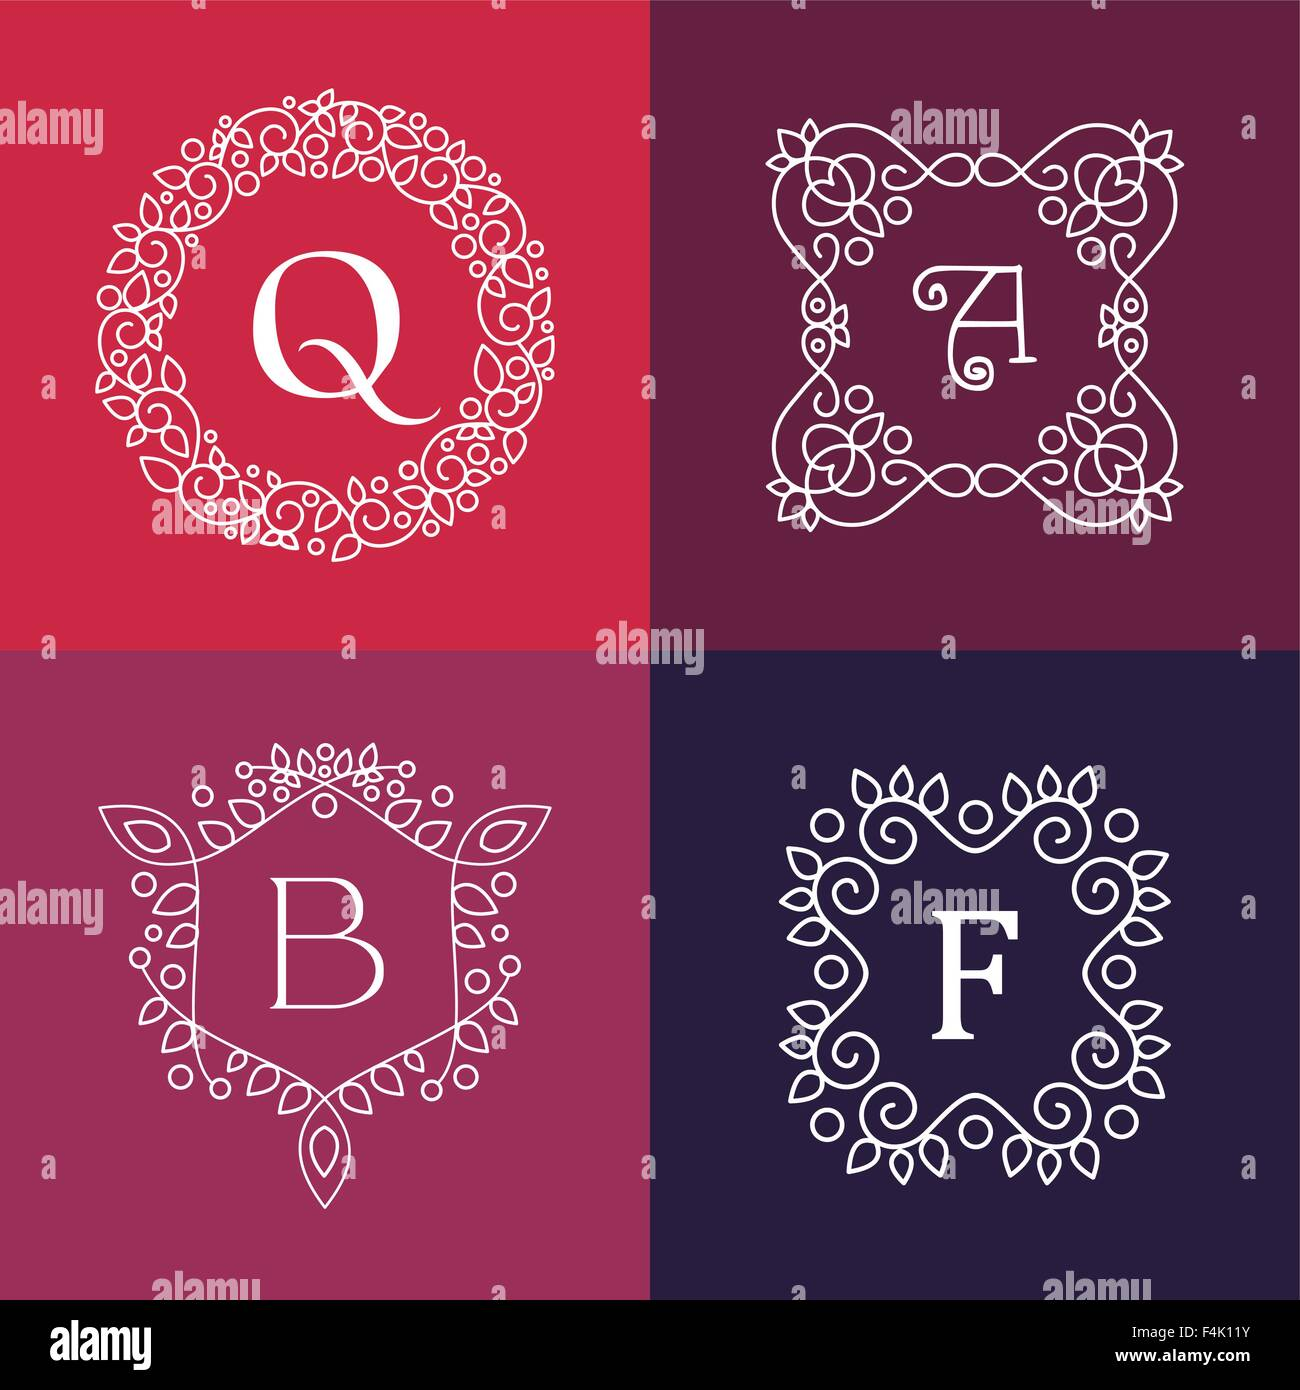 7dd000f5ff89 Ornament monogram style mono line floral letter frame set. EPS10 vector. -  Stock Image